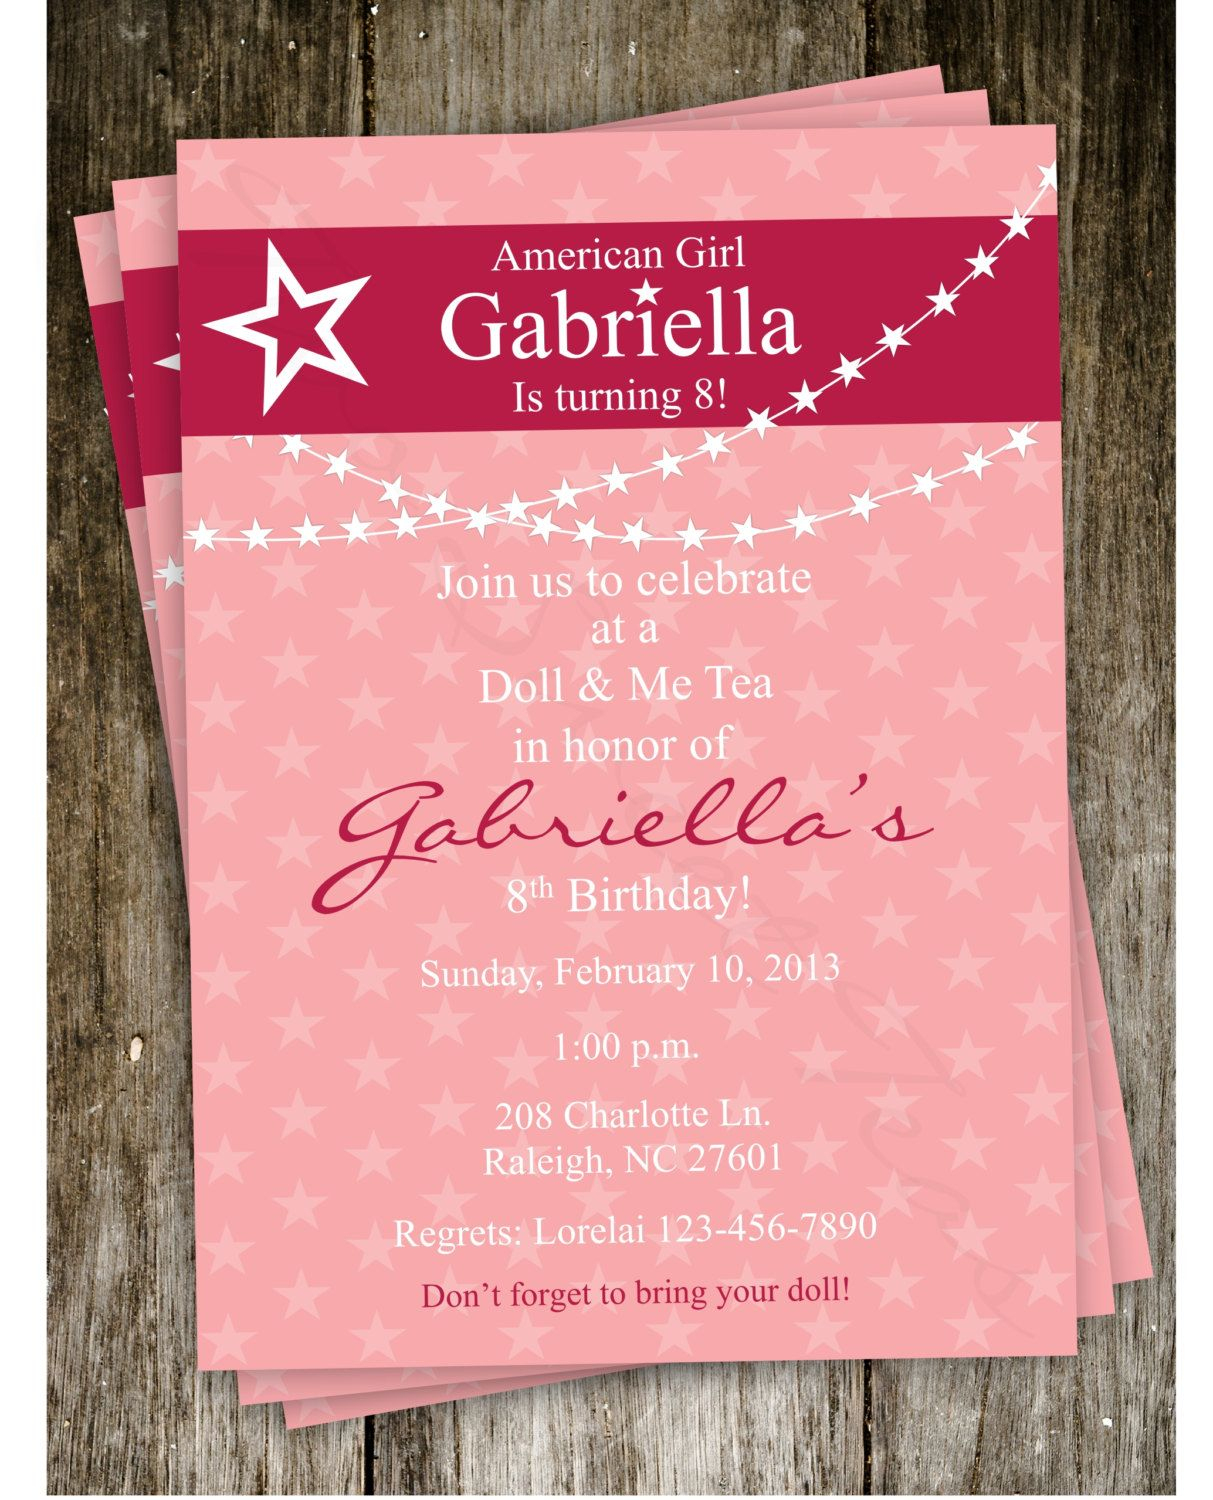 Free American Girl Party Invitations Printable – Invitetown- Can't - American Girl Party Invitations Free Printable